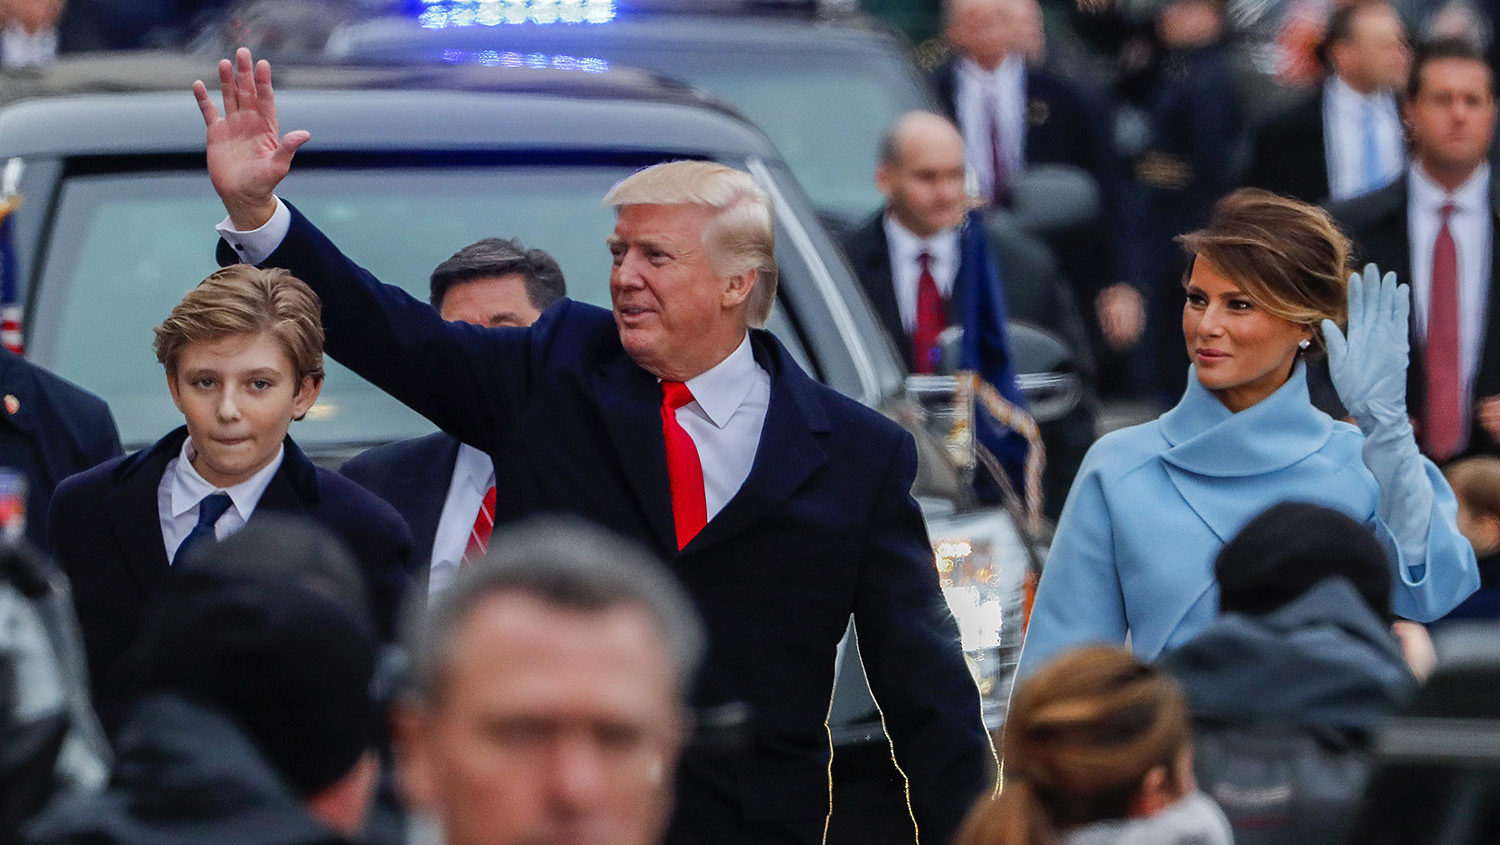 Donald Trump and Melania wave